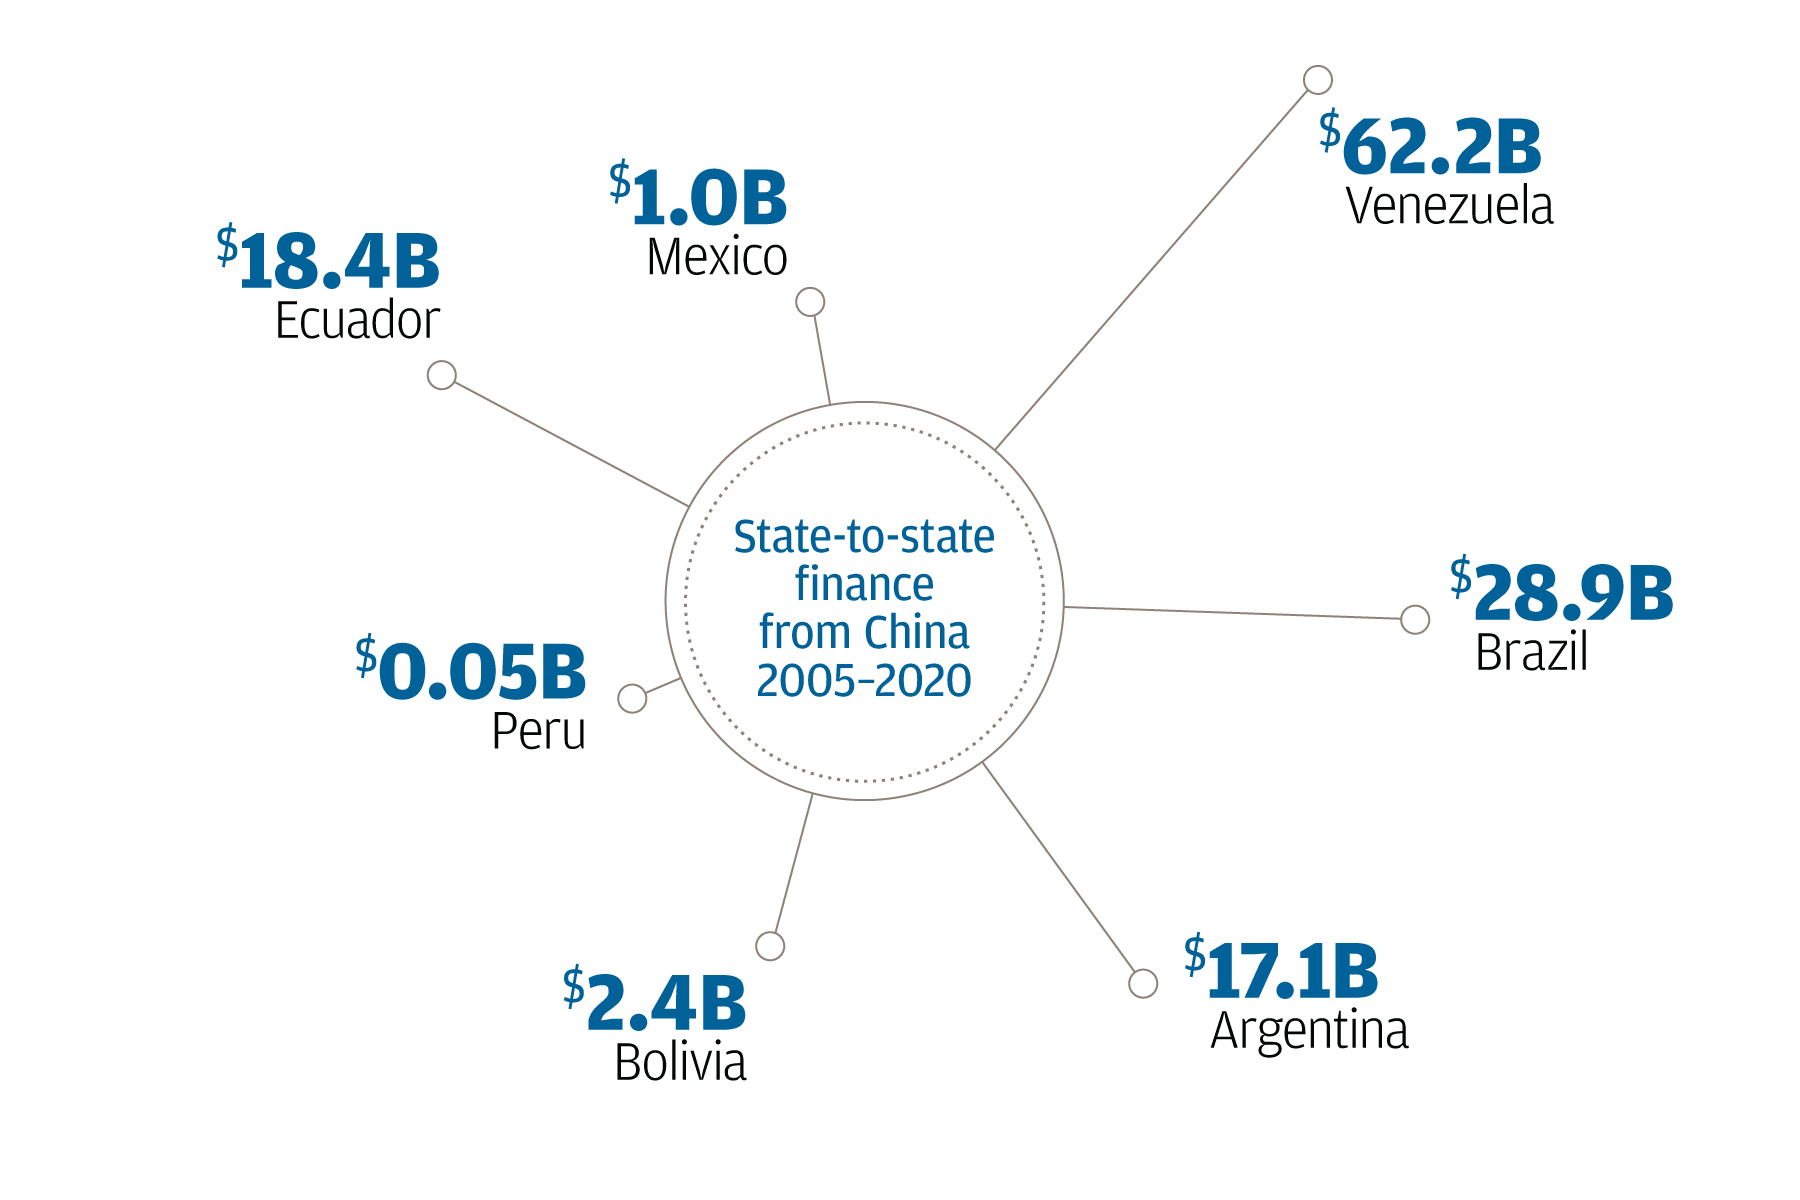 A graphic illustrating state-to-state financing from China to Latin American countries from 2005 to 2020. Venezuela received $62.2B in lending, Brazil $28.9B, Argentina $17.1B, Bolivia $2.4B, Peru $0.05B, Ecuador $18.4B and Mexico $1.0B.